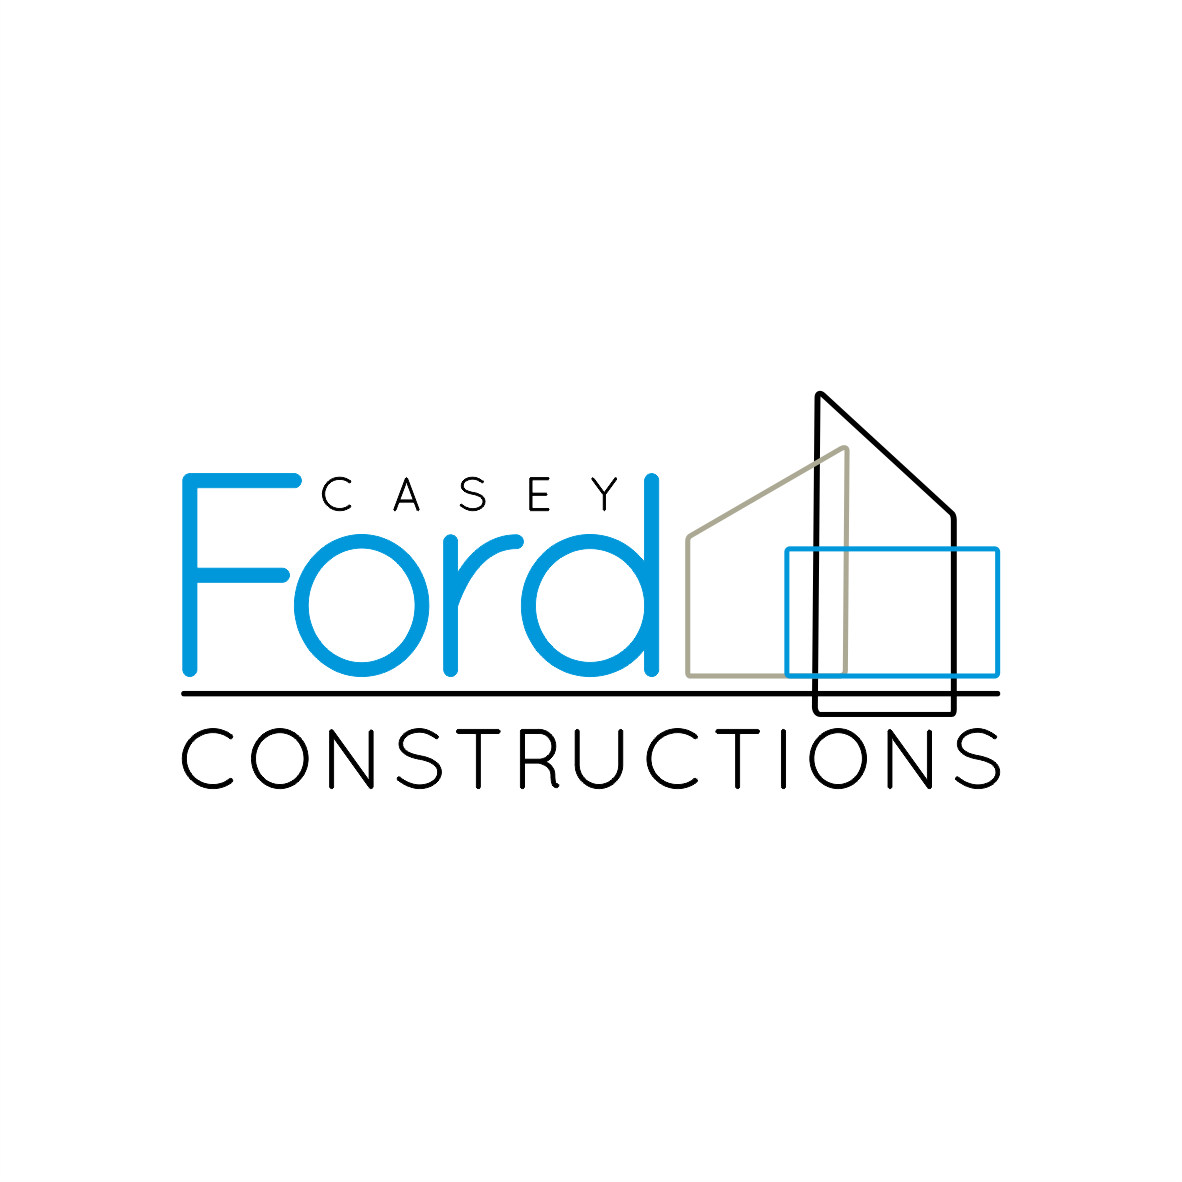 Casey Ford Constructions